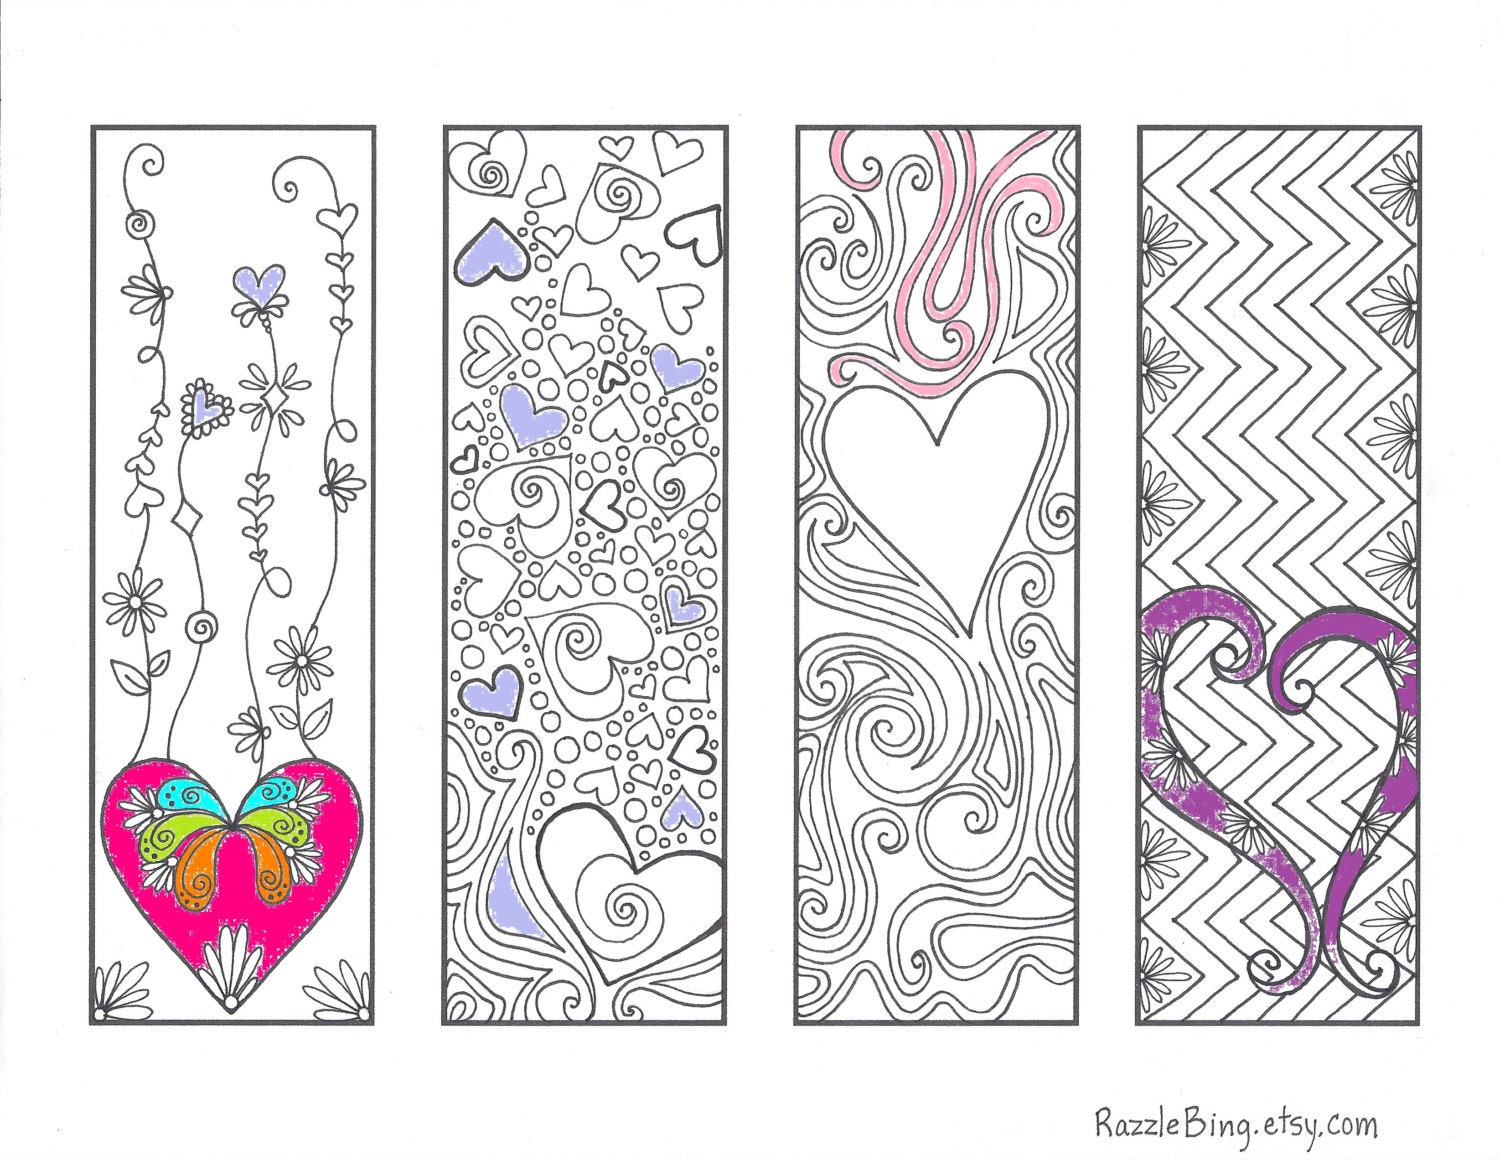 Inventive image inside printable bookmarks to color